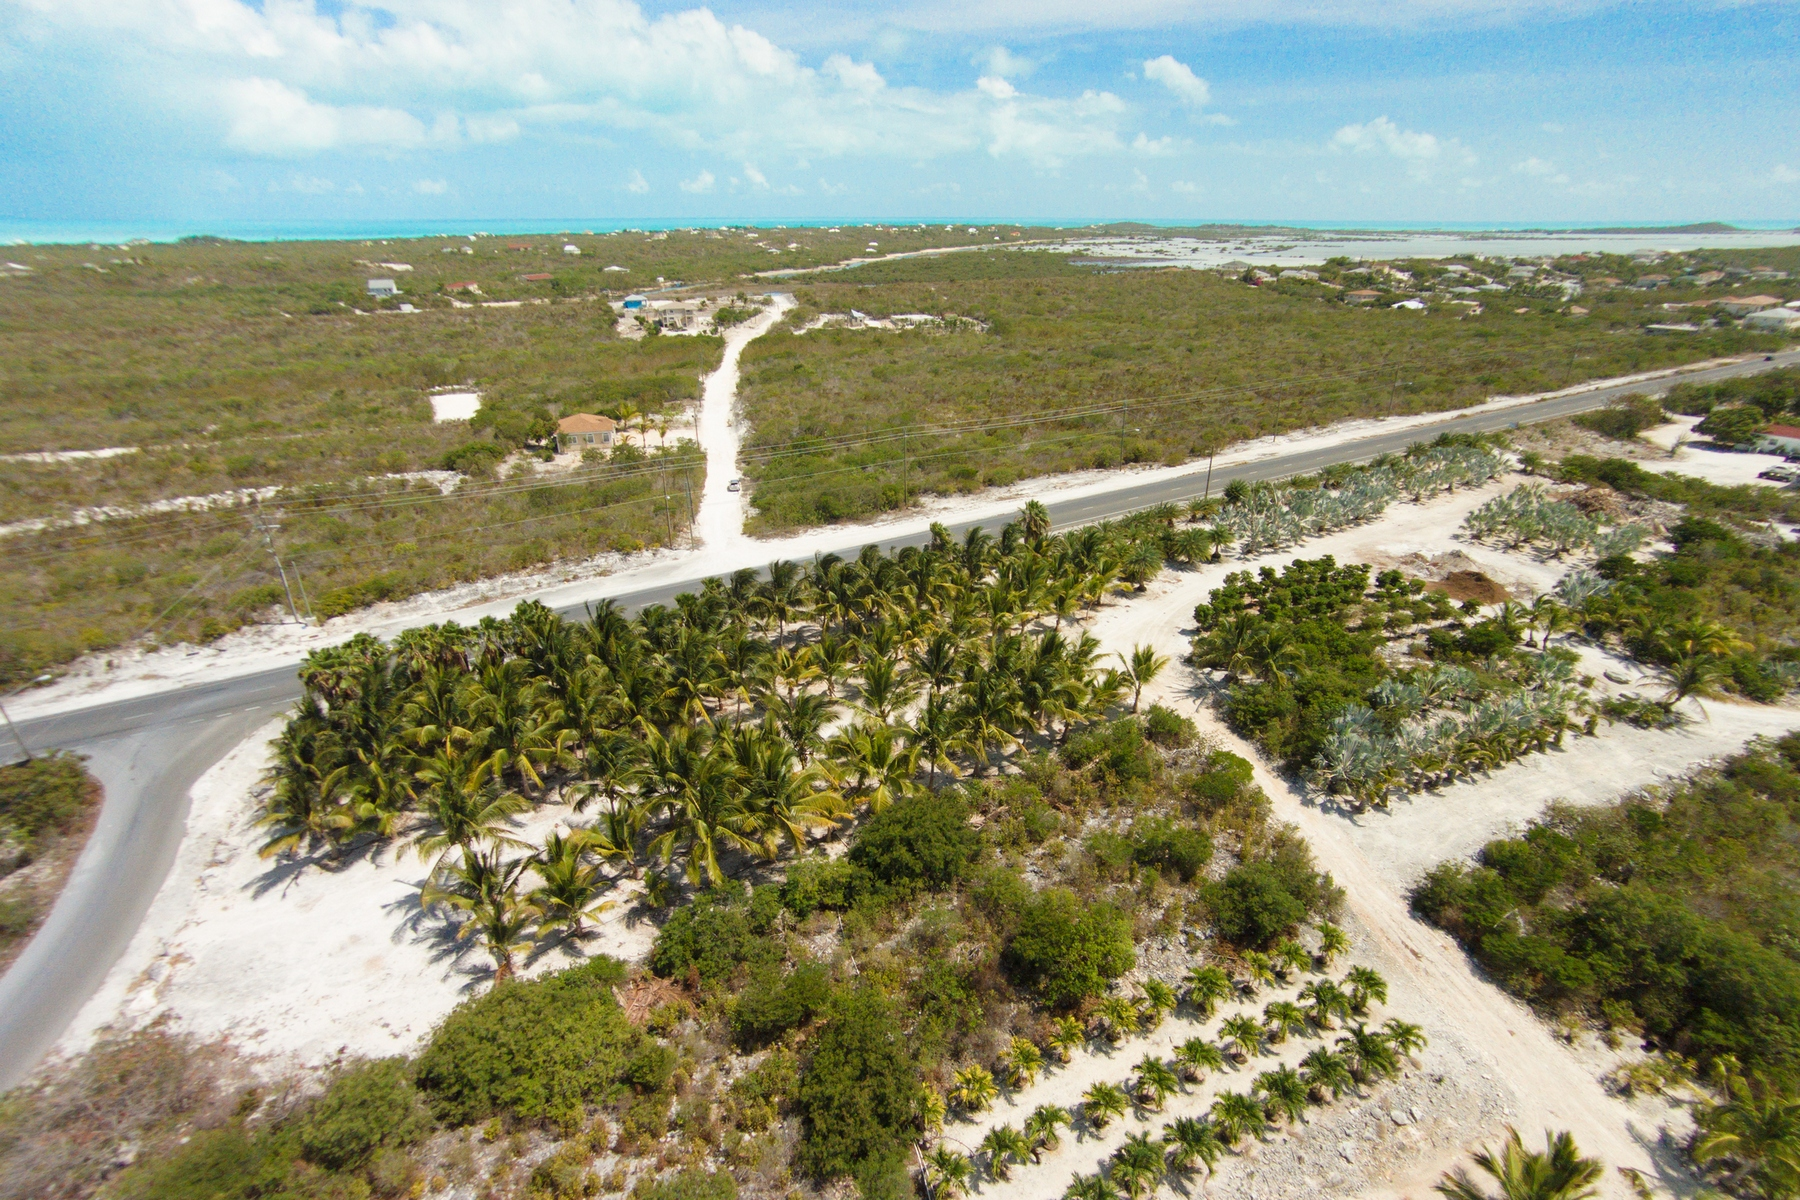 Land for Sale at Large Parcel on Leeward Highway Grace Bay, TKCA 1ZZ Turks And Caicos Islands